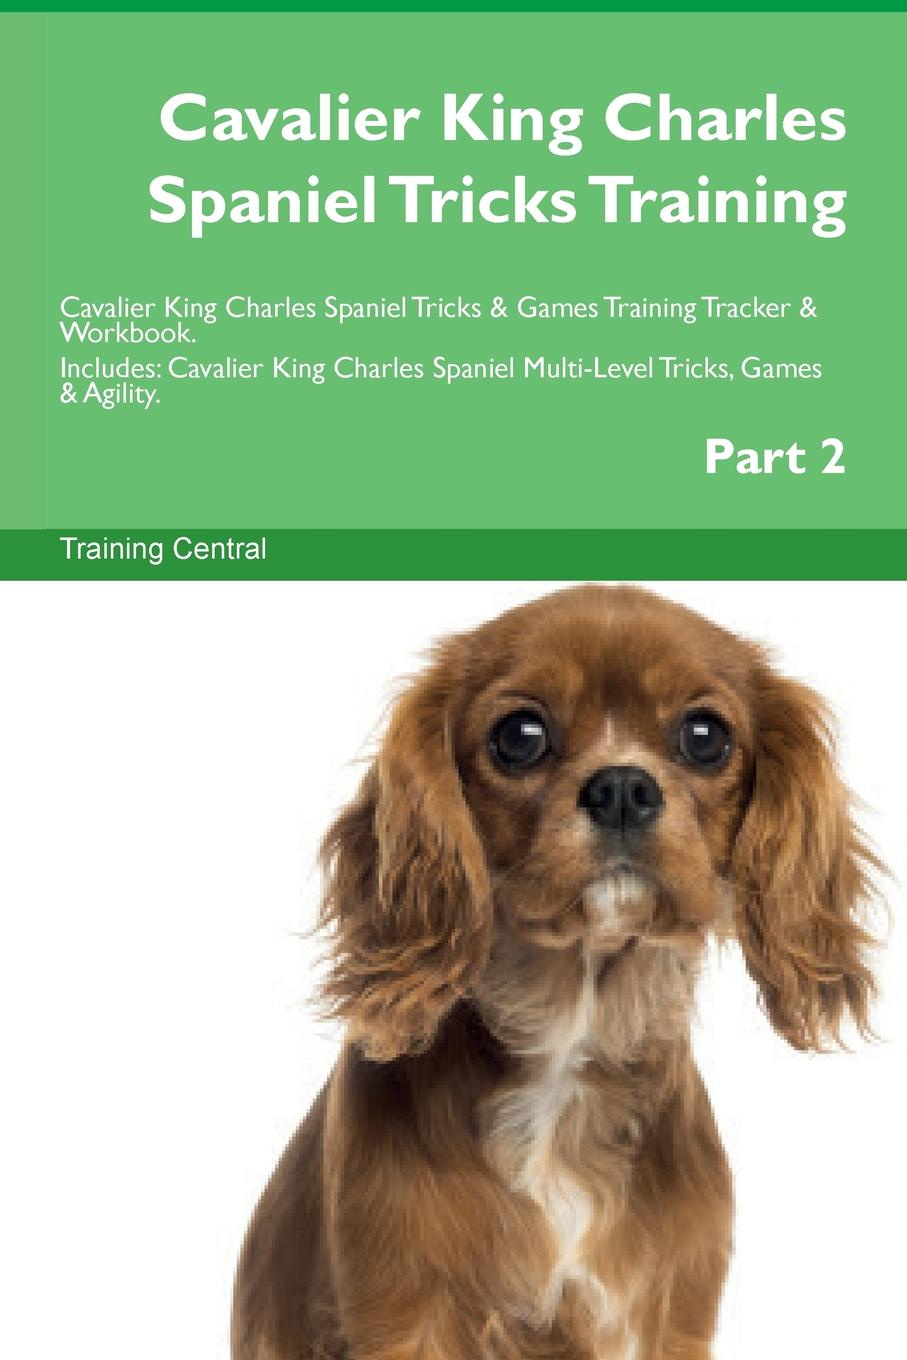 Training Central Cavalier King Charles Spaniel Tricks Training Cavalier King Charles Spaniel Tricks . Games Training Tracker . Workbook. Includes. Cavalier King Charles Spaniel Multi-Level Tricks, Games . Agility. Part 2 цена 2017